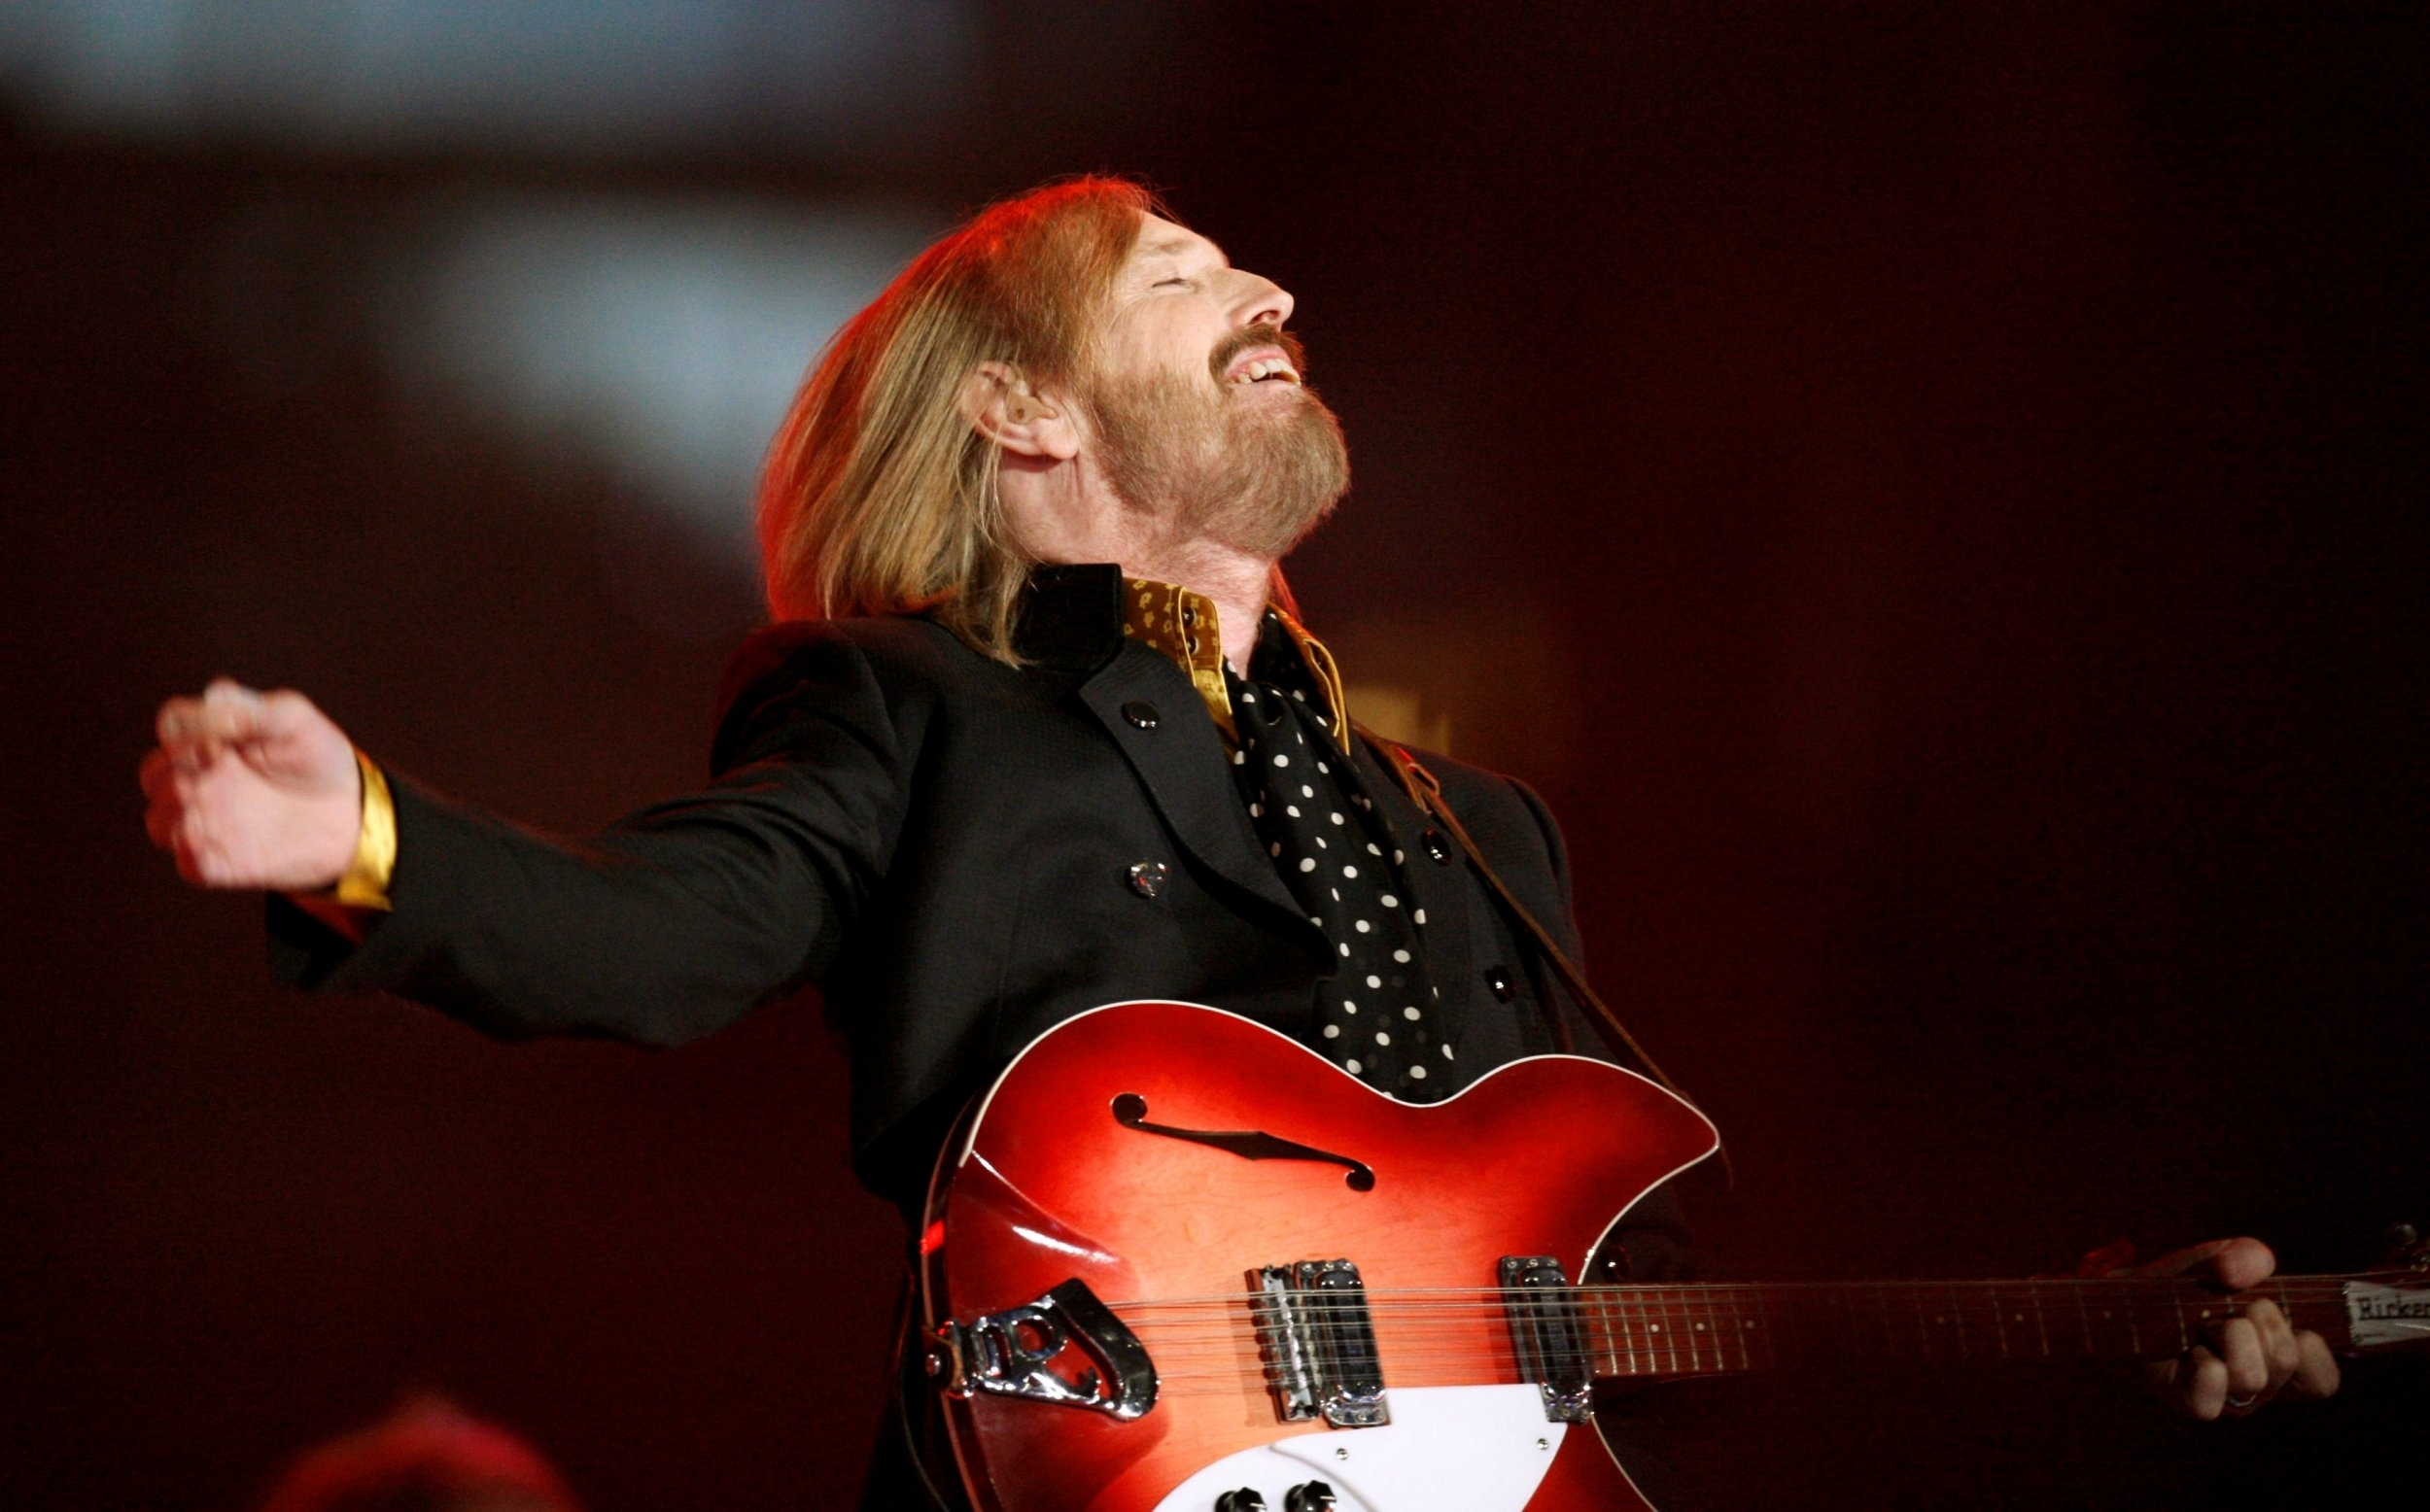 Tom Petty, America's Definitive Rock Icon, Crafted A within Tom Petty Super Bowl